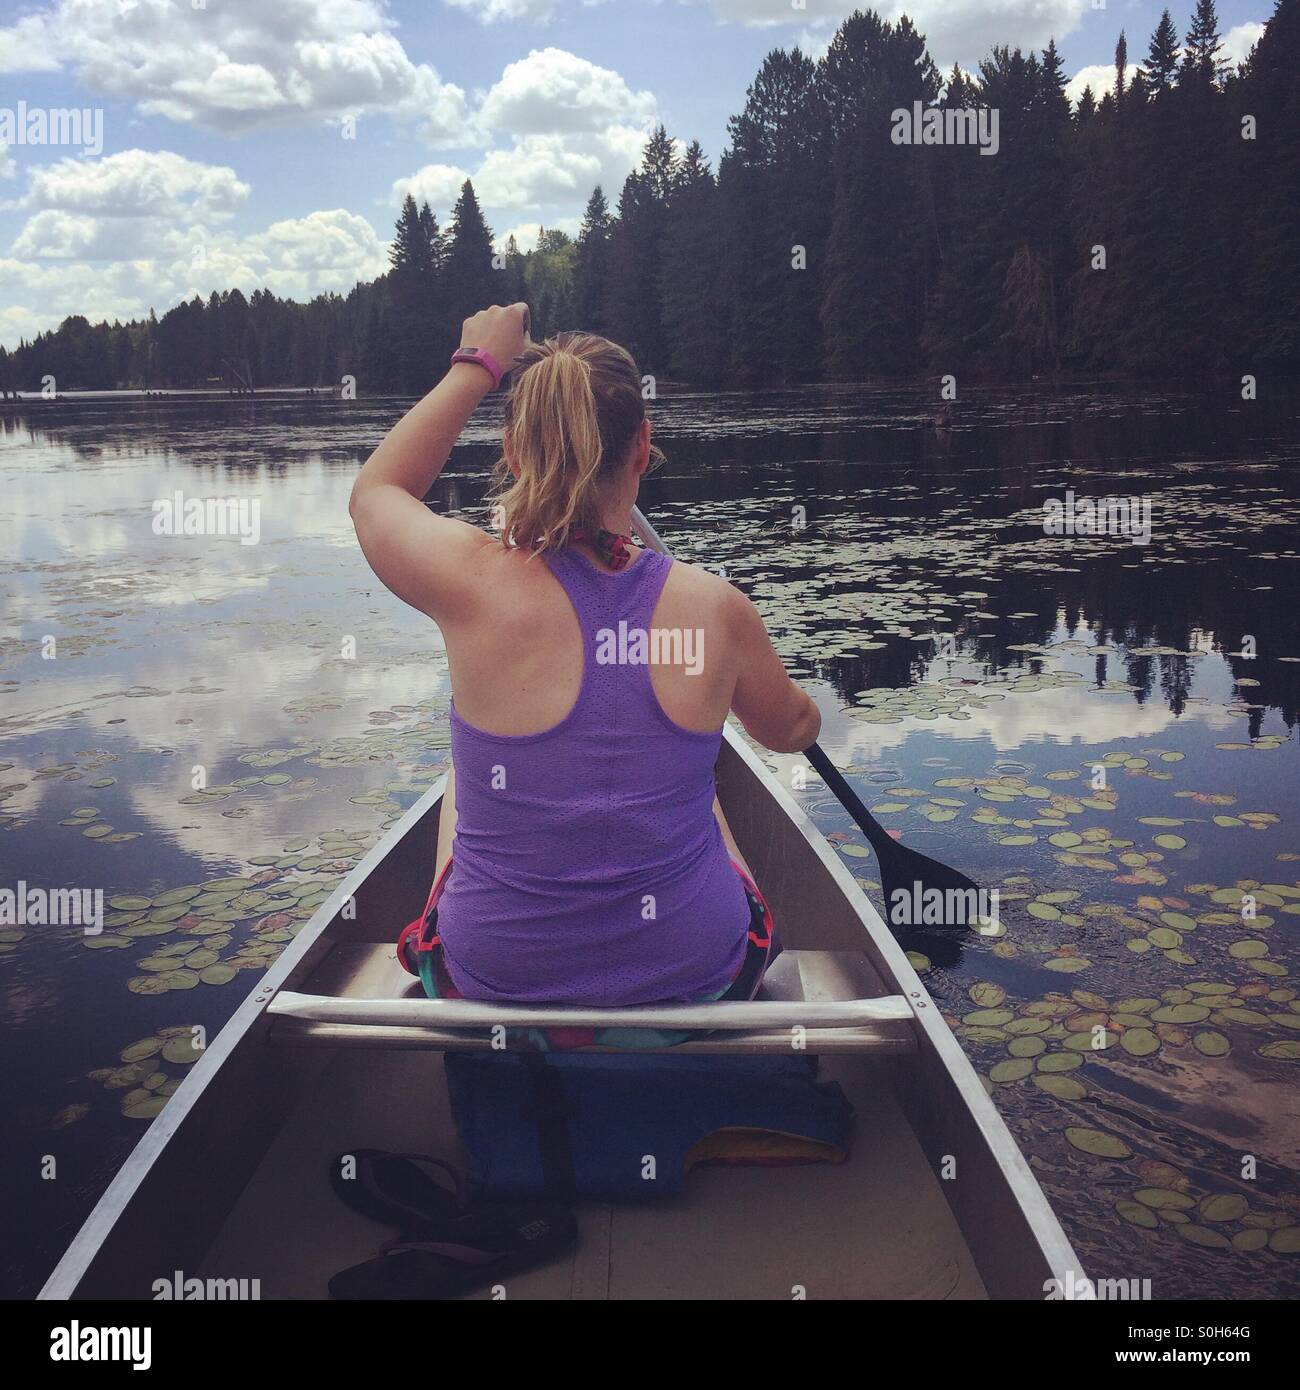 Girl paddling a canoe in a lake in Algonquin park, Ontario, Canada - Stock Image